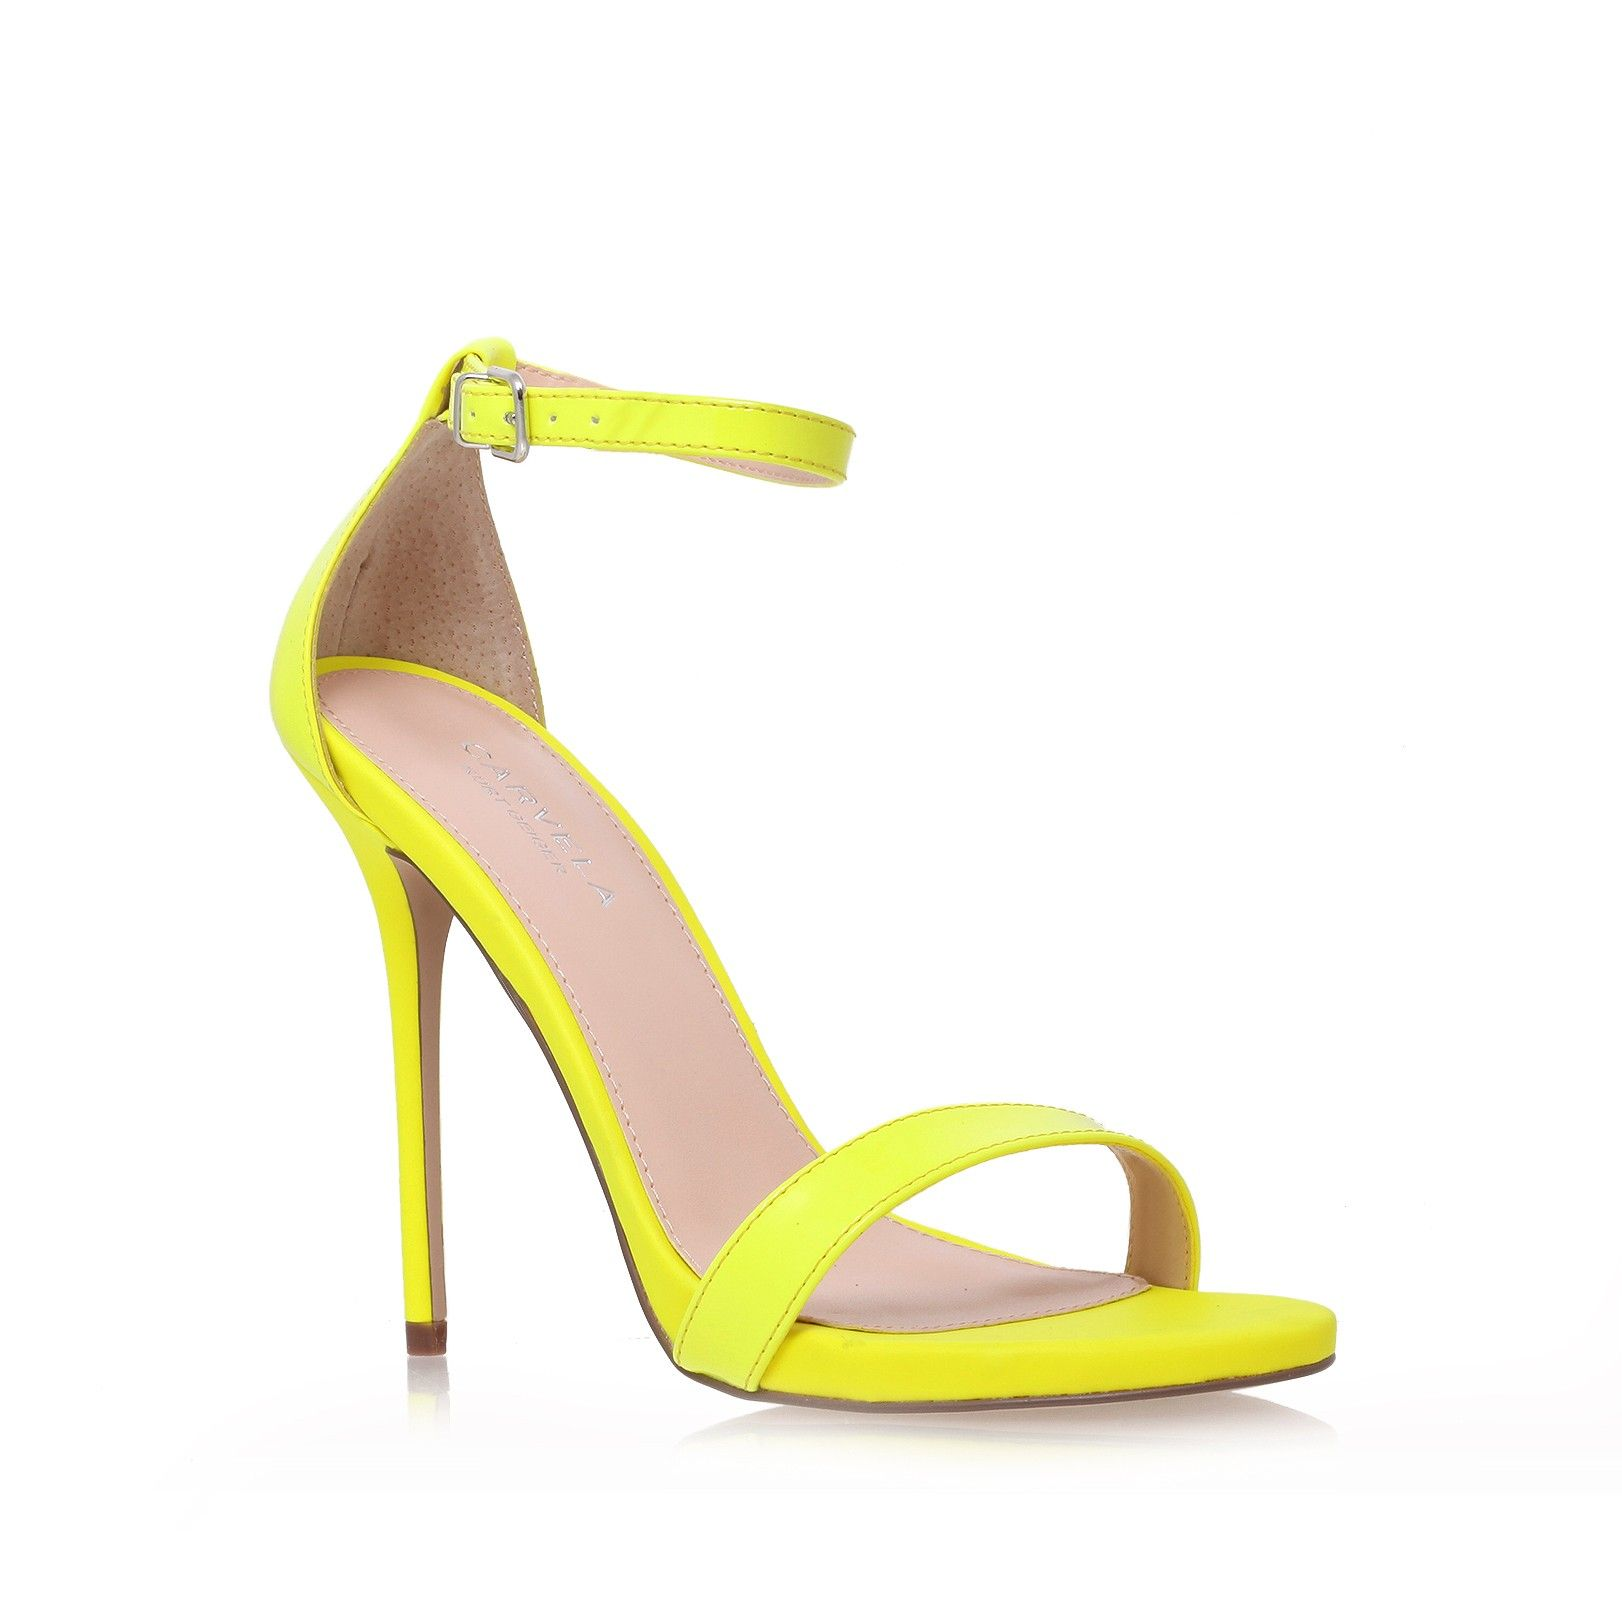 glacier, yellow shoe by carvela kurt geiger - women shoes sandals ...